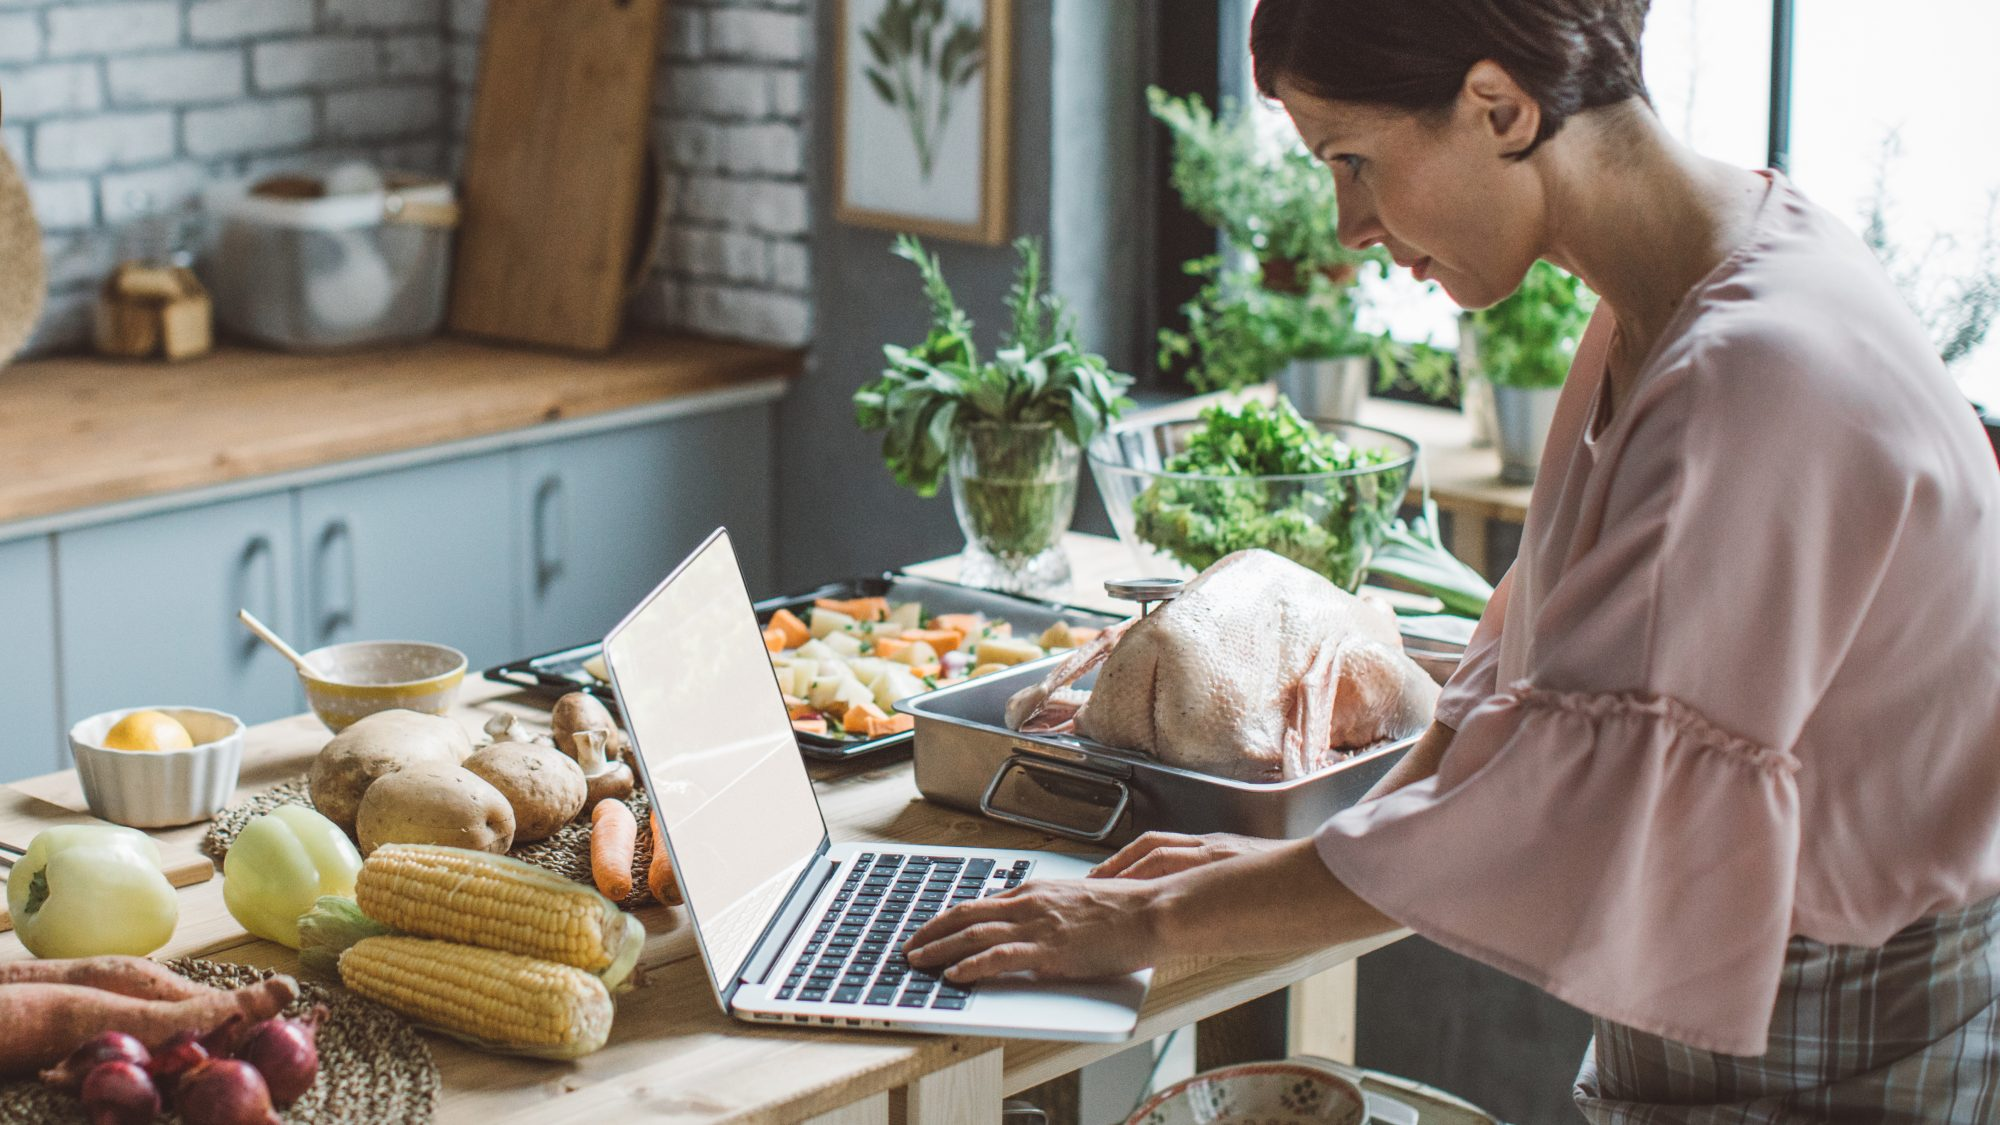 How to cope without family or friends during the holidays 2020 - virtual cook-along